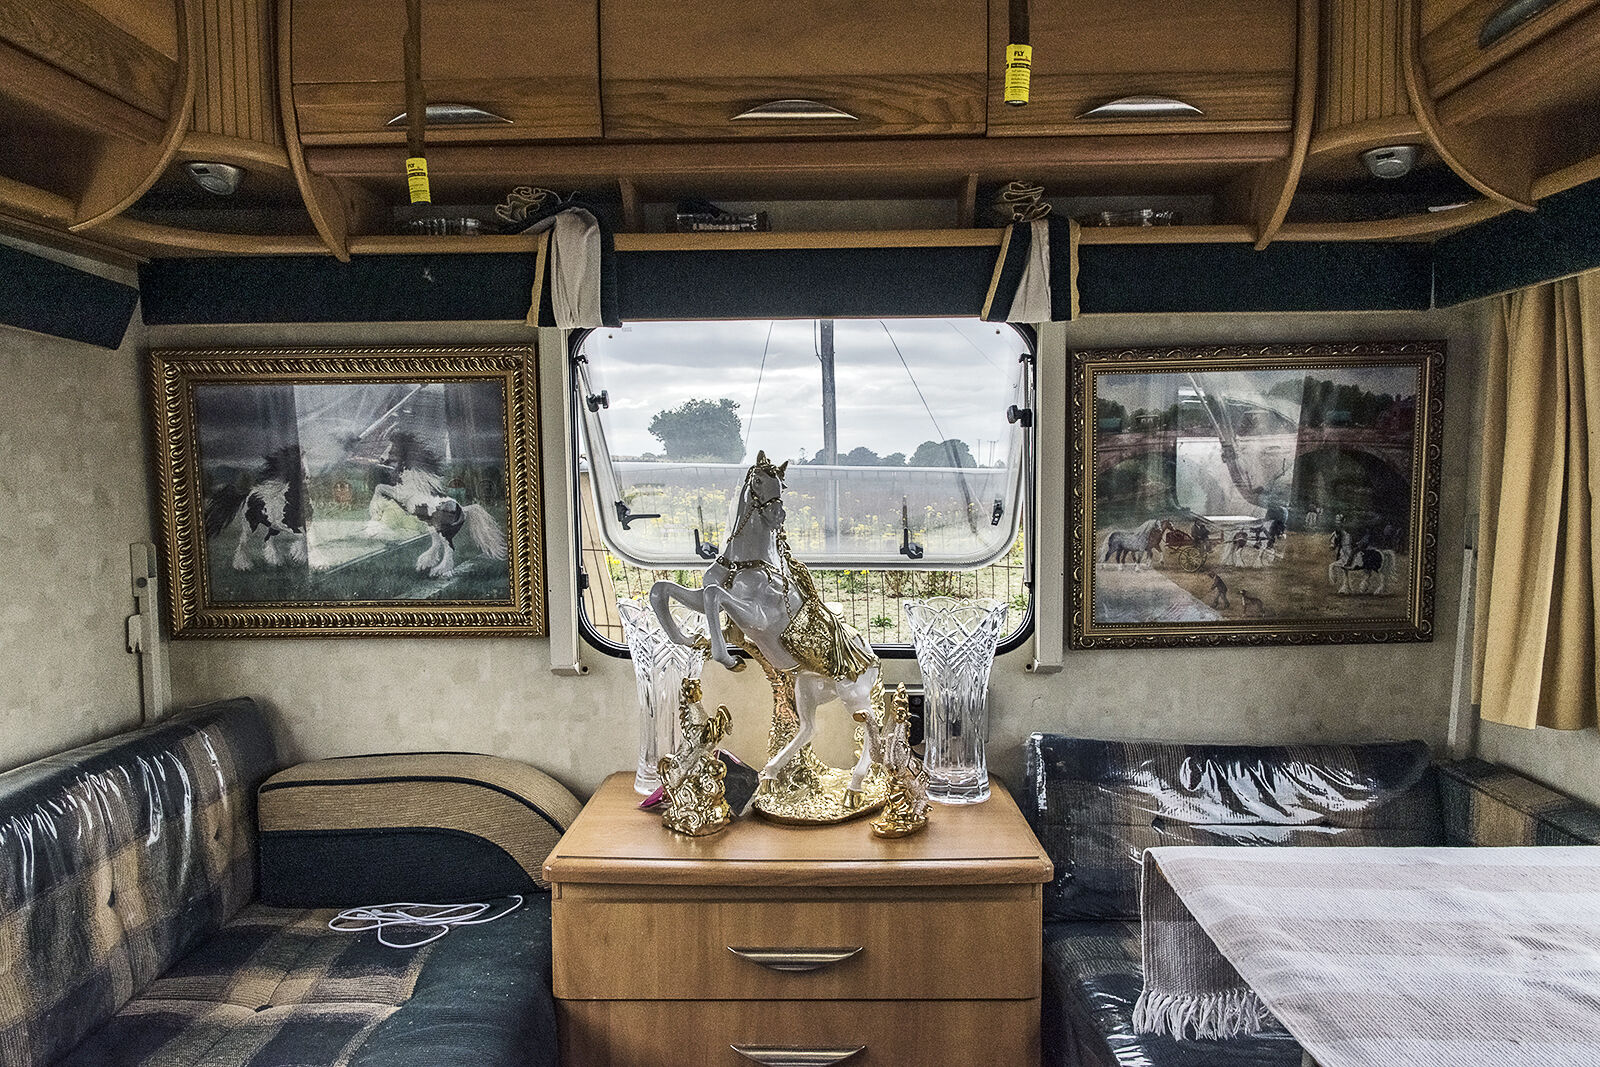 Inside Jimmy and Ally's Caravan, Tipperary, Ireland 2019